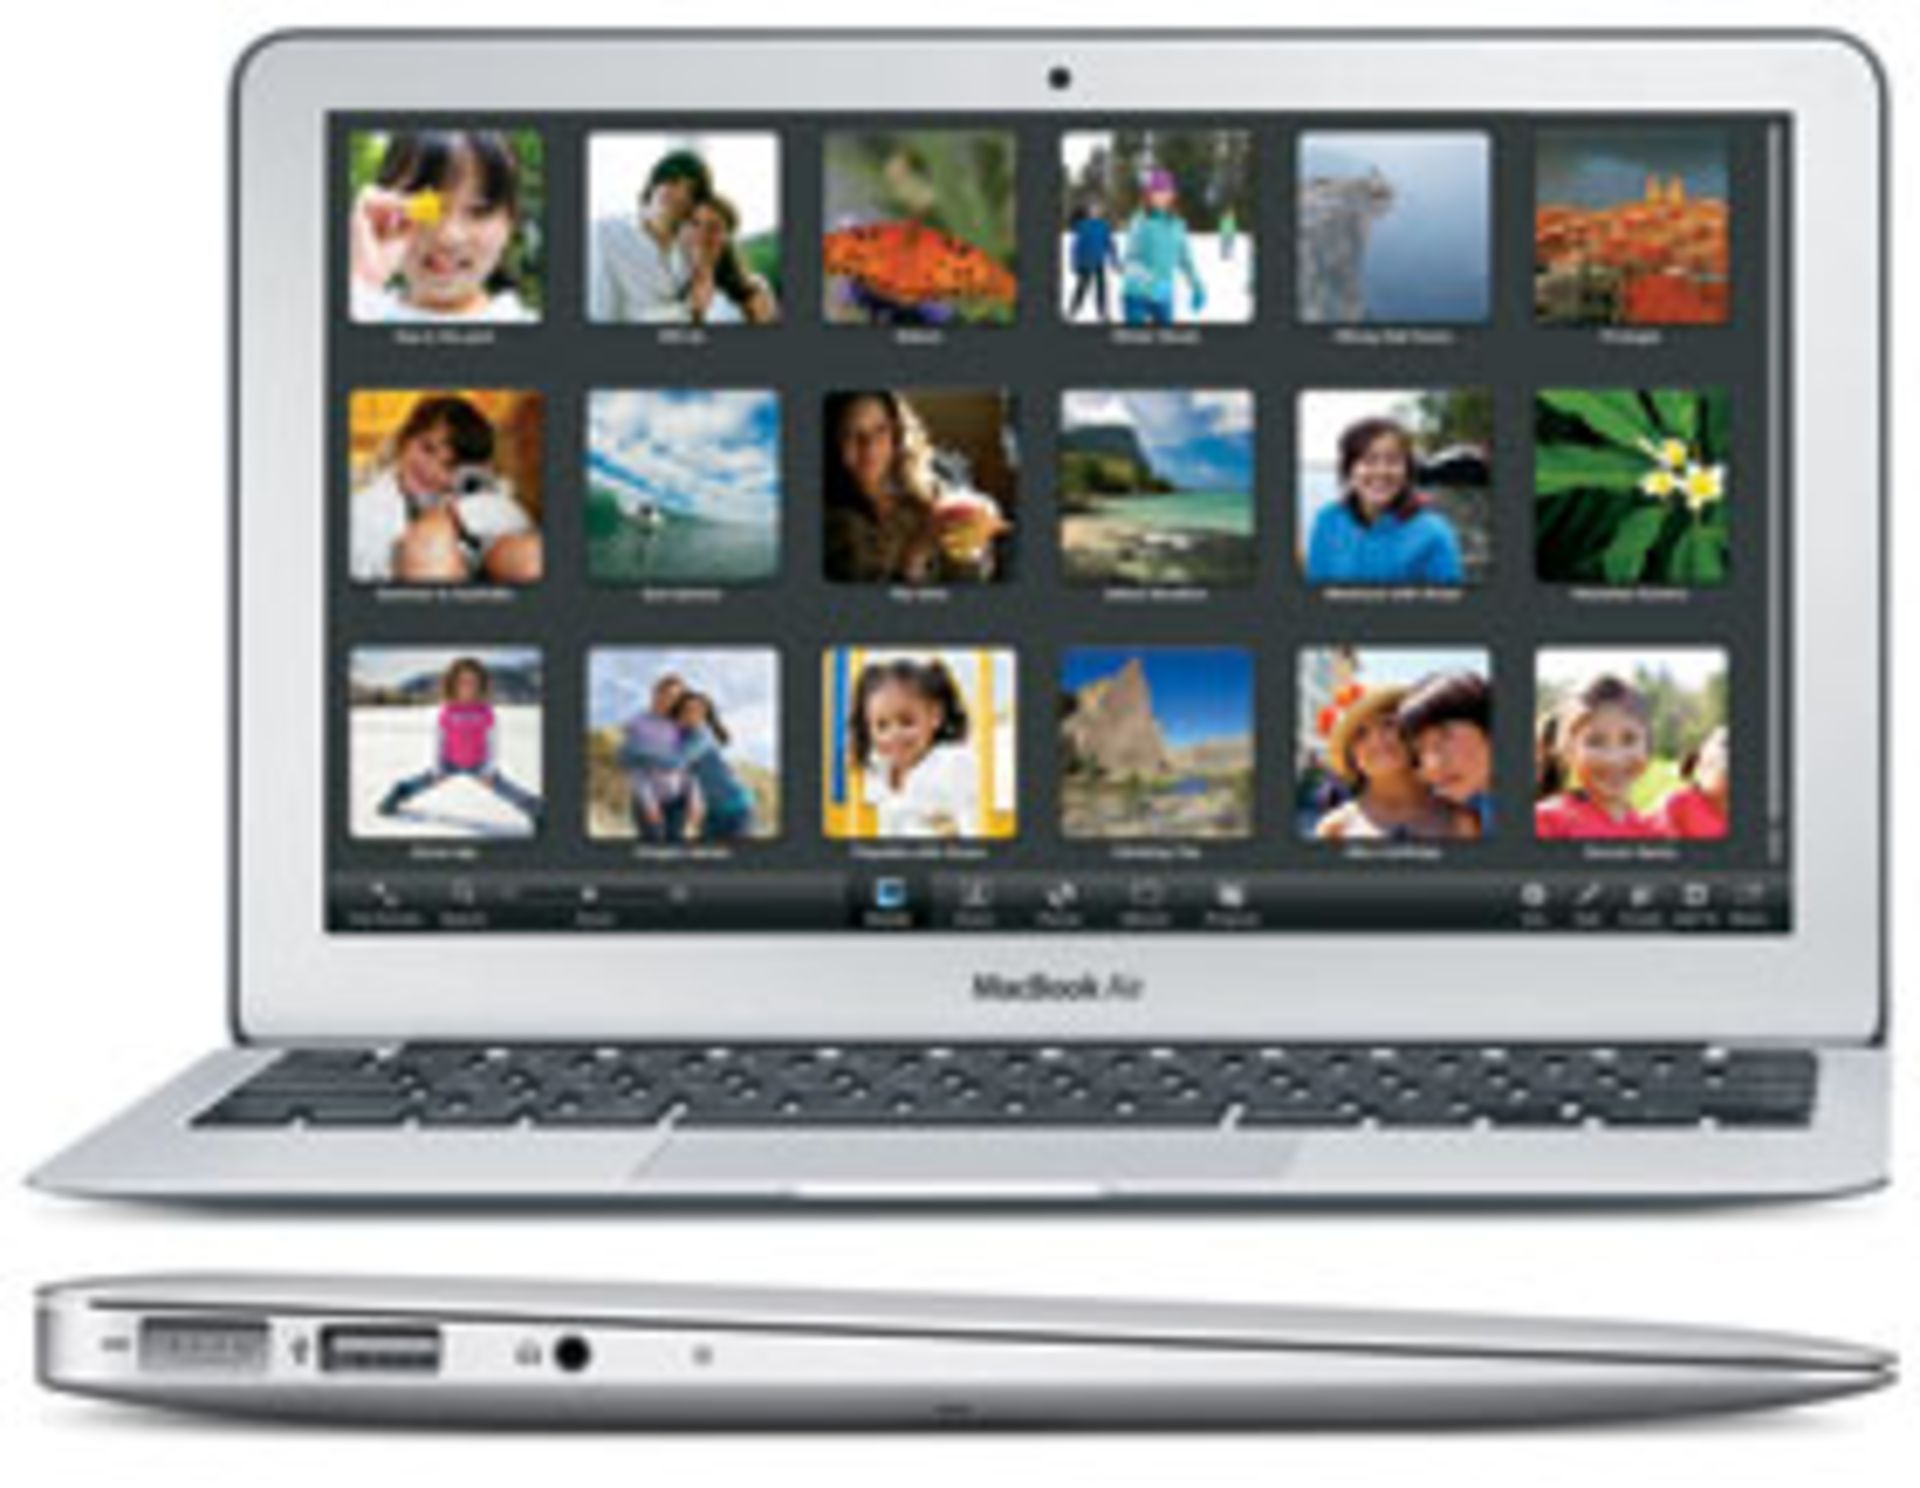 Lot 60012 - V Grade B Macbook Air 11.6 Inch Core 2 Duo - 64GB SSD - A1370 - Available Approx 7 Working Days